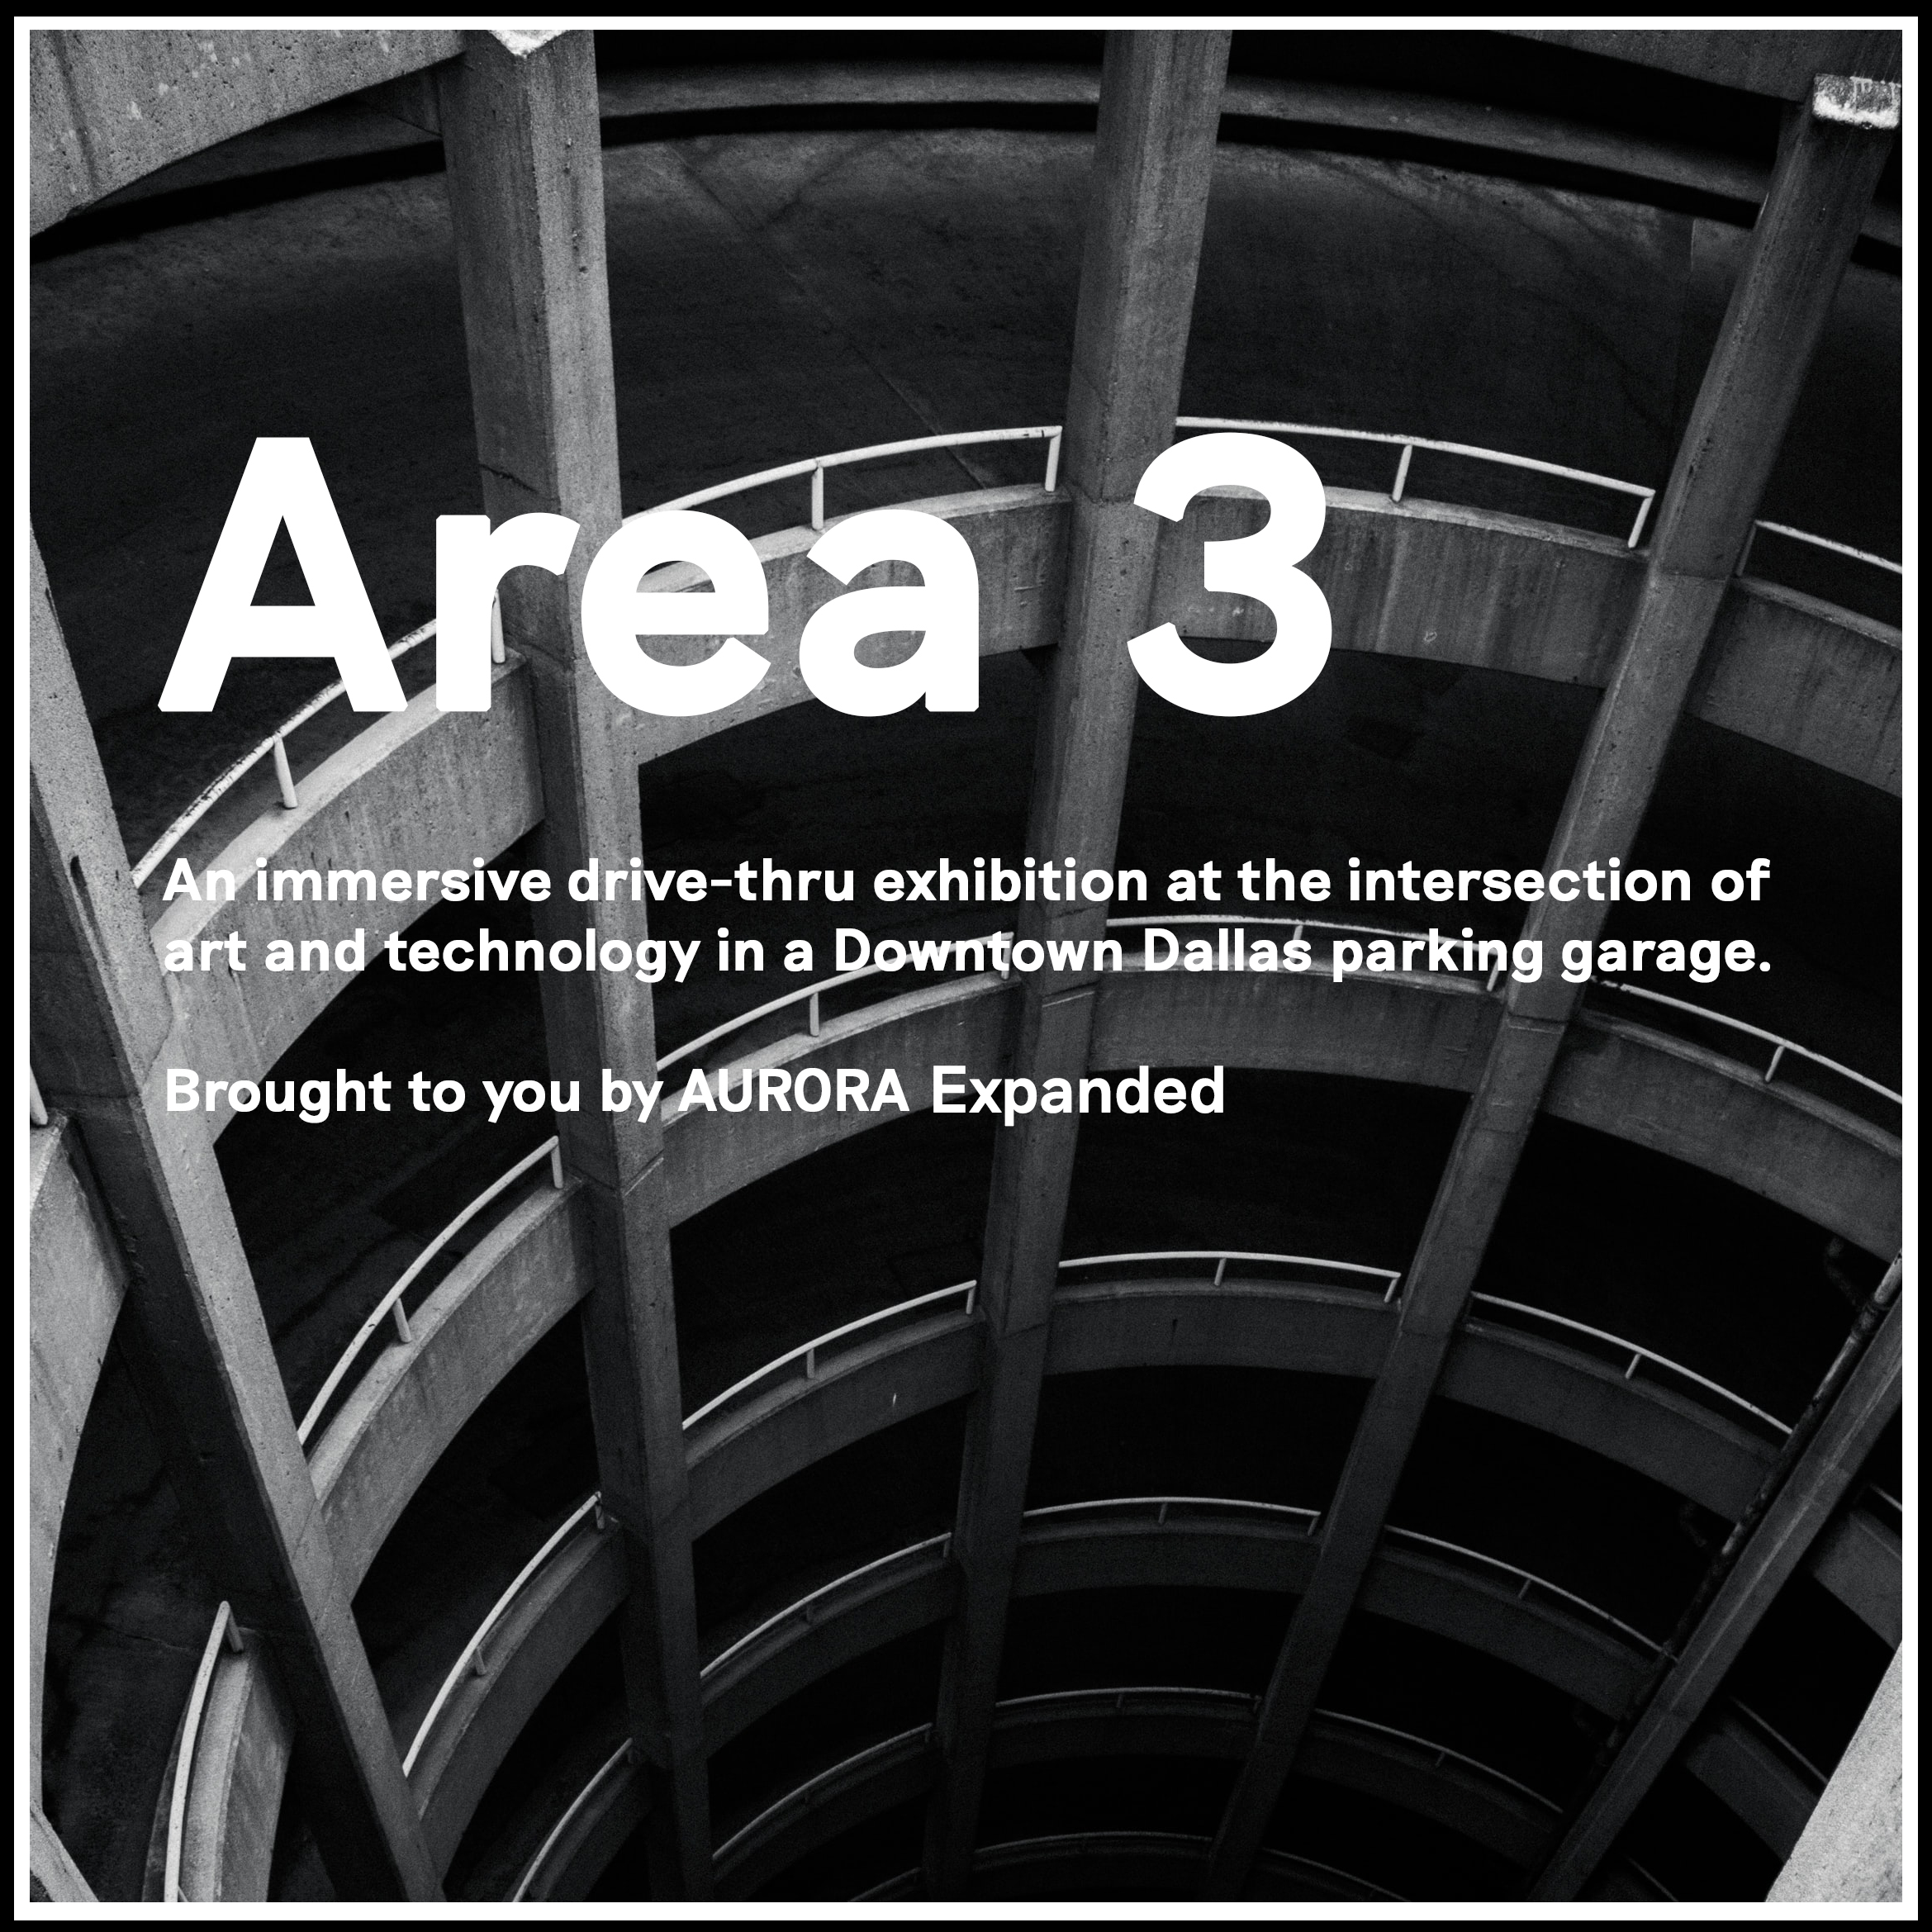 Area 3 Brought to you by AURORA Expanded web design and graphic illustration by Kwerk Marketing Agency